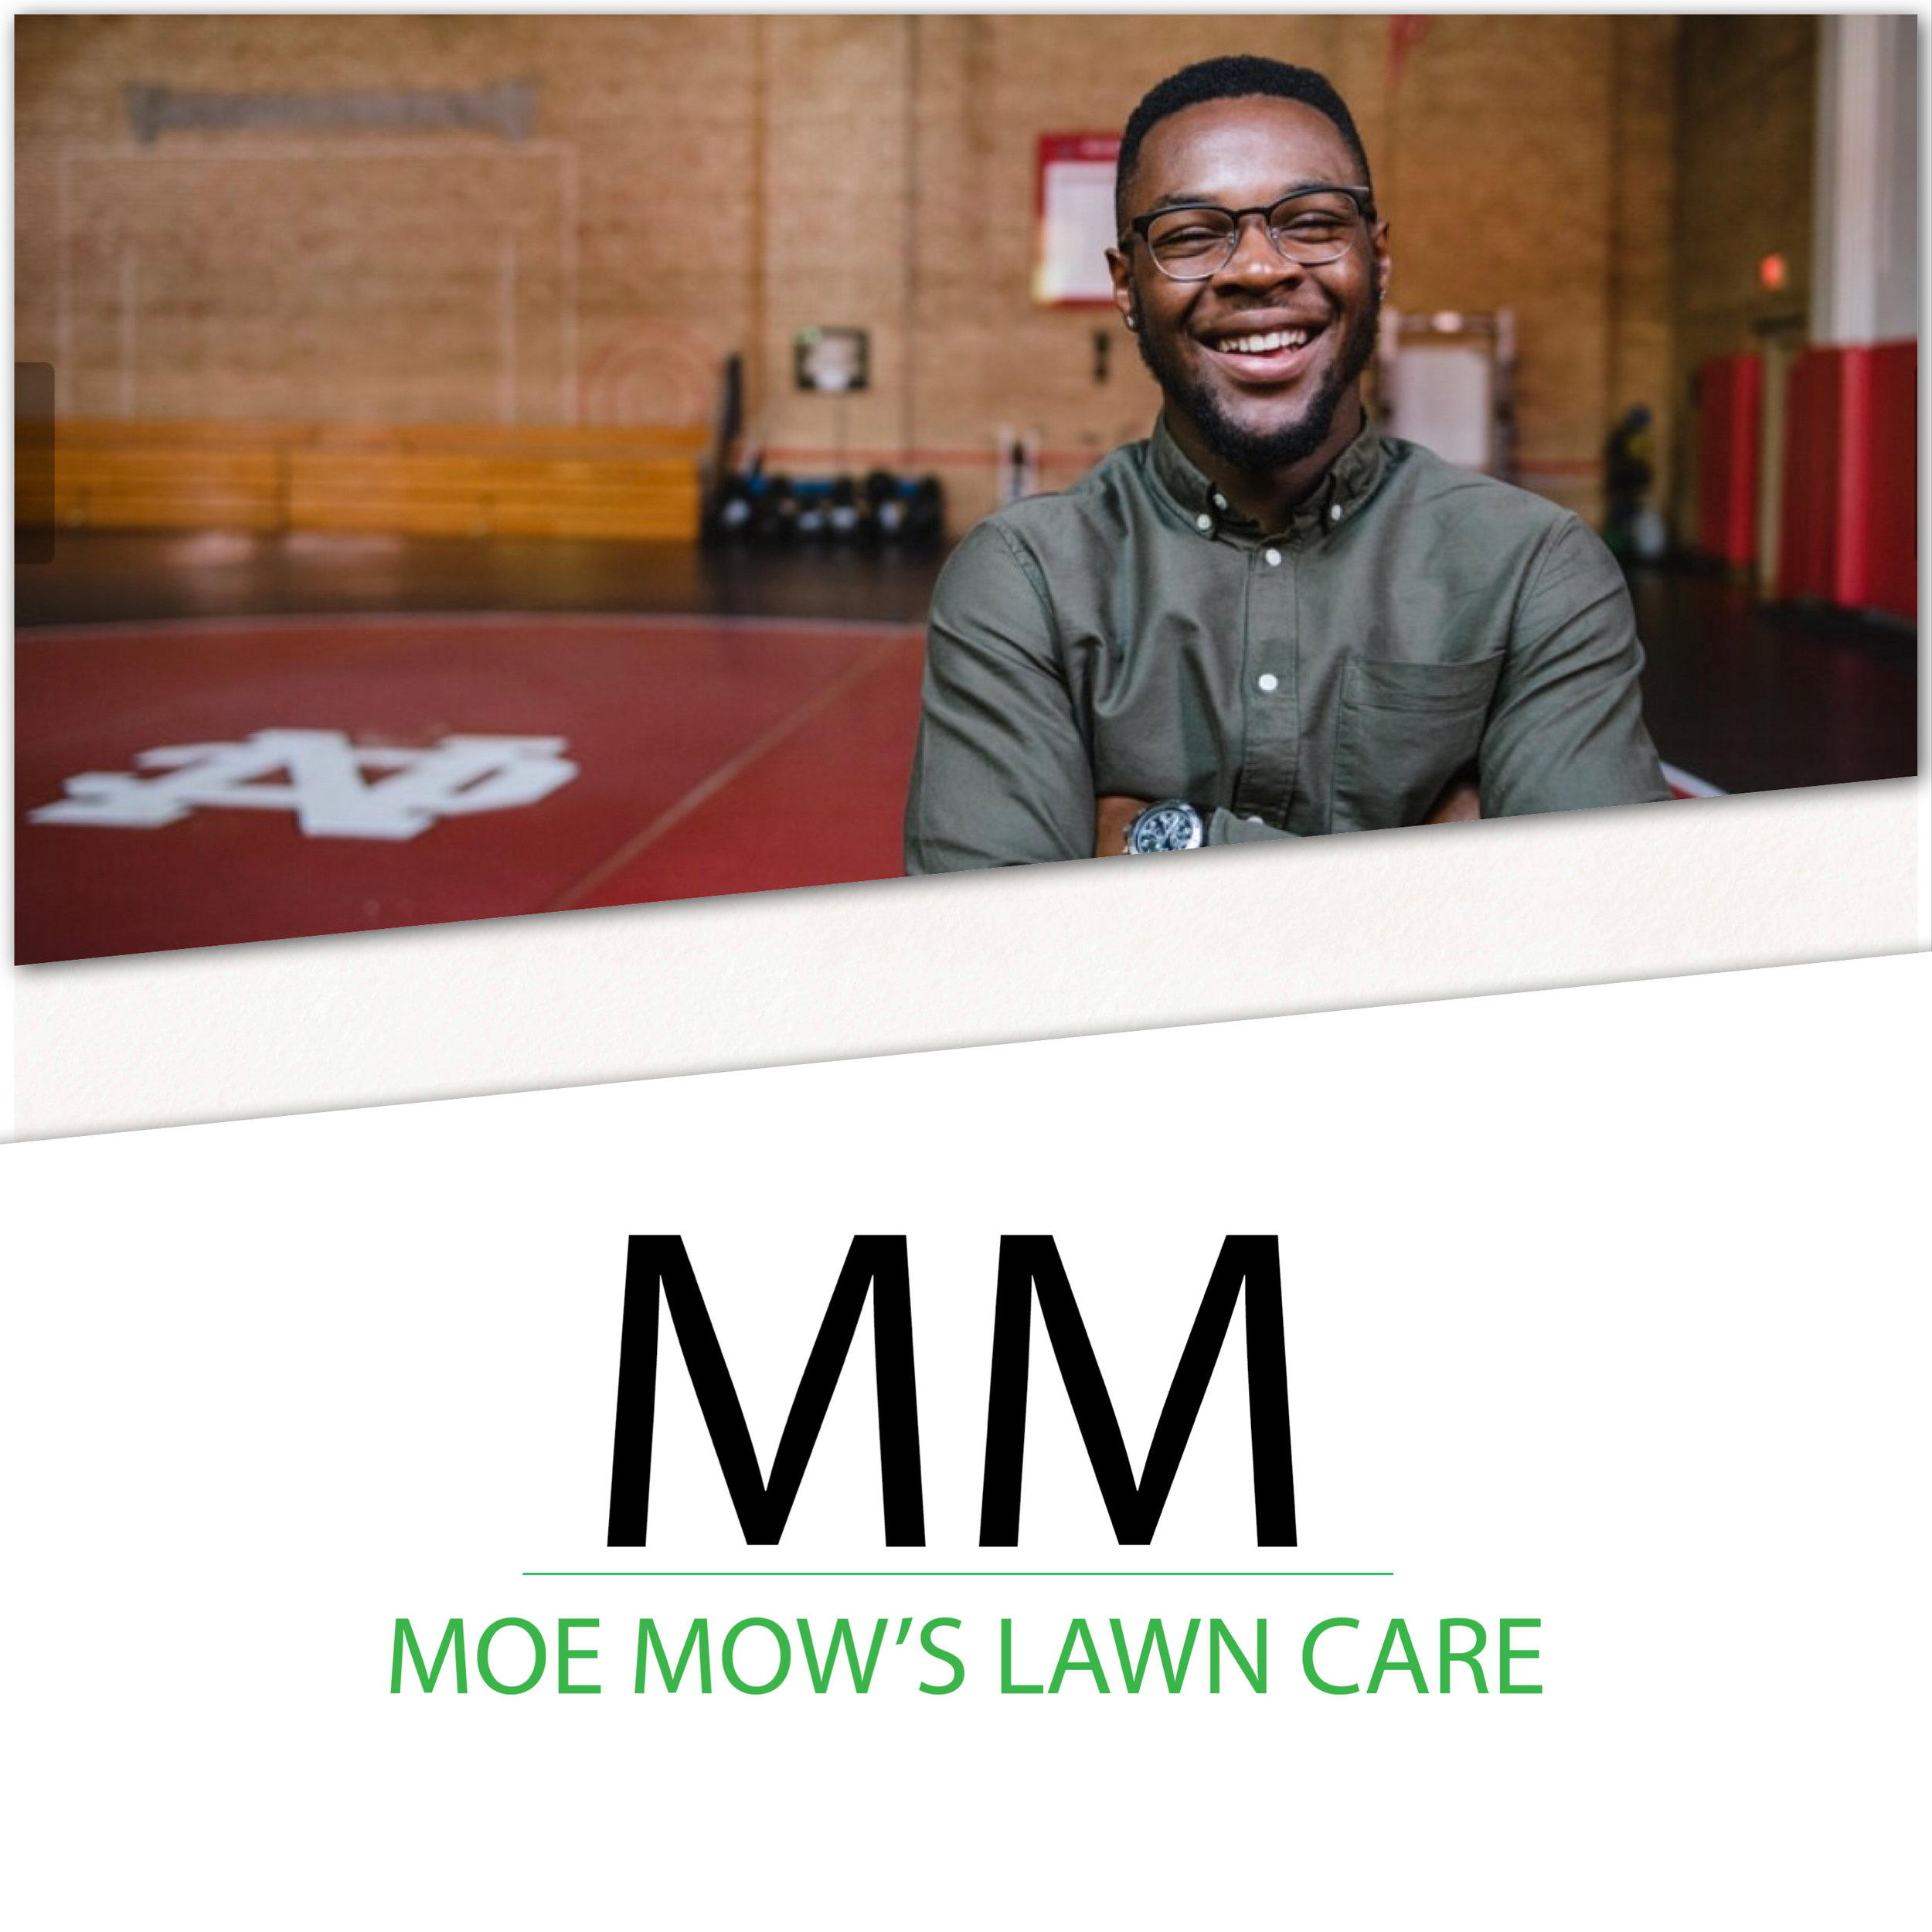 Moe Mow's Lawn Care was established in 2013 by Naperville resident, Moe Mitchell. He was a sophomore at the time at Neuqua Valley and grew the company throughout his high school time. The company substantially improved every year from drastic changes, better equipment, more knowledge on lawn care, and aiming to surpass customers expectations. In the fall of 2016, Moe became a full-time student at North Central College. Moe stepped down from mowing and landscaping once he started college in order to still run the company but to hire his first subcontract crew to mow and landscape the rest of his homes for the remaining fall time. With Moe being so particular with quality and reliability, he spent an absurd amount of time picking the right crew. After a great fall time with his first crew, Moe decided to grow his company as a fully subcontracted service, yet a premium service as well. He did this by hiring similar minded subcontractors that had the same vision of quality and reliability while he manages the overall business side of things. And this was the start of Moe building one of the best lawn services in the Naperville area focusing on great customer service, great reliability, and unparalleled quality. While the company was doing very well, Moe was not content and wanted to be more than just a premium service. After months of pondering, Moe finally figured out what he wanted to do. This is when Moe turned his business to an innovative technology company run through an App. The idea was to still run a premium and fully subcontracted service but to be very convenient to customers in order to save them a substantial amount of time through the integration of technology. Since the start of 2018, Moe Mow's Lawn Care has become a premium tech lawn service. -